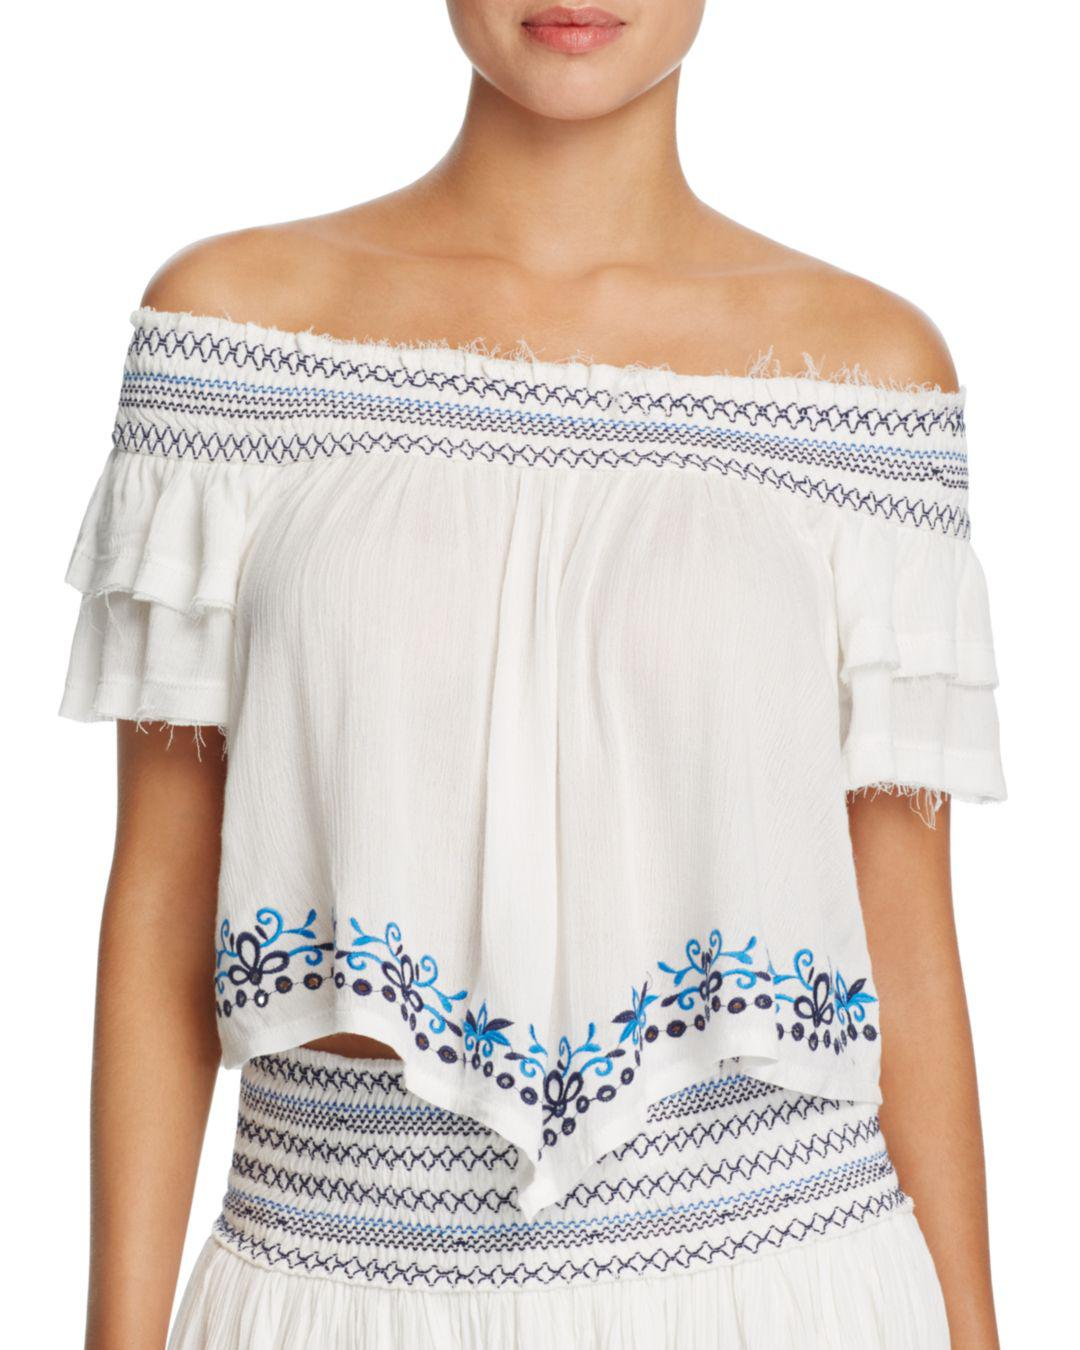 c2d6786fd4de1 Lyst - Surf Gypsy Embroidered Off-the-shoulder Top Swim Cover-up in ...